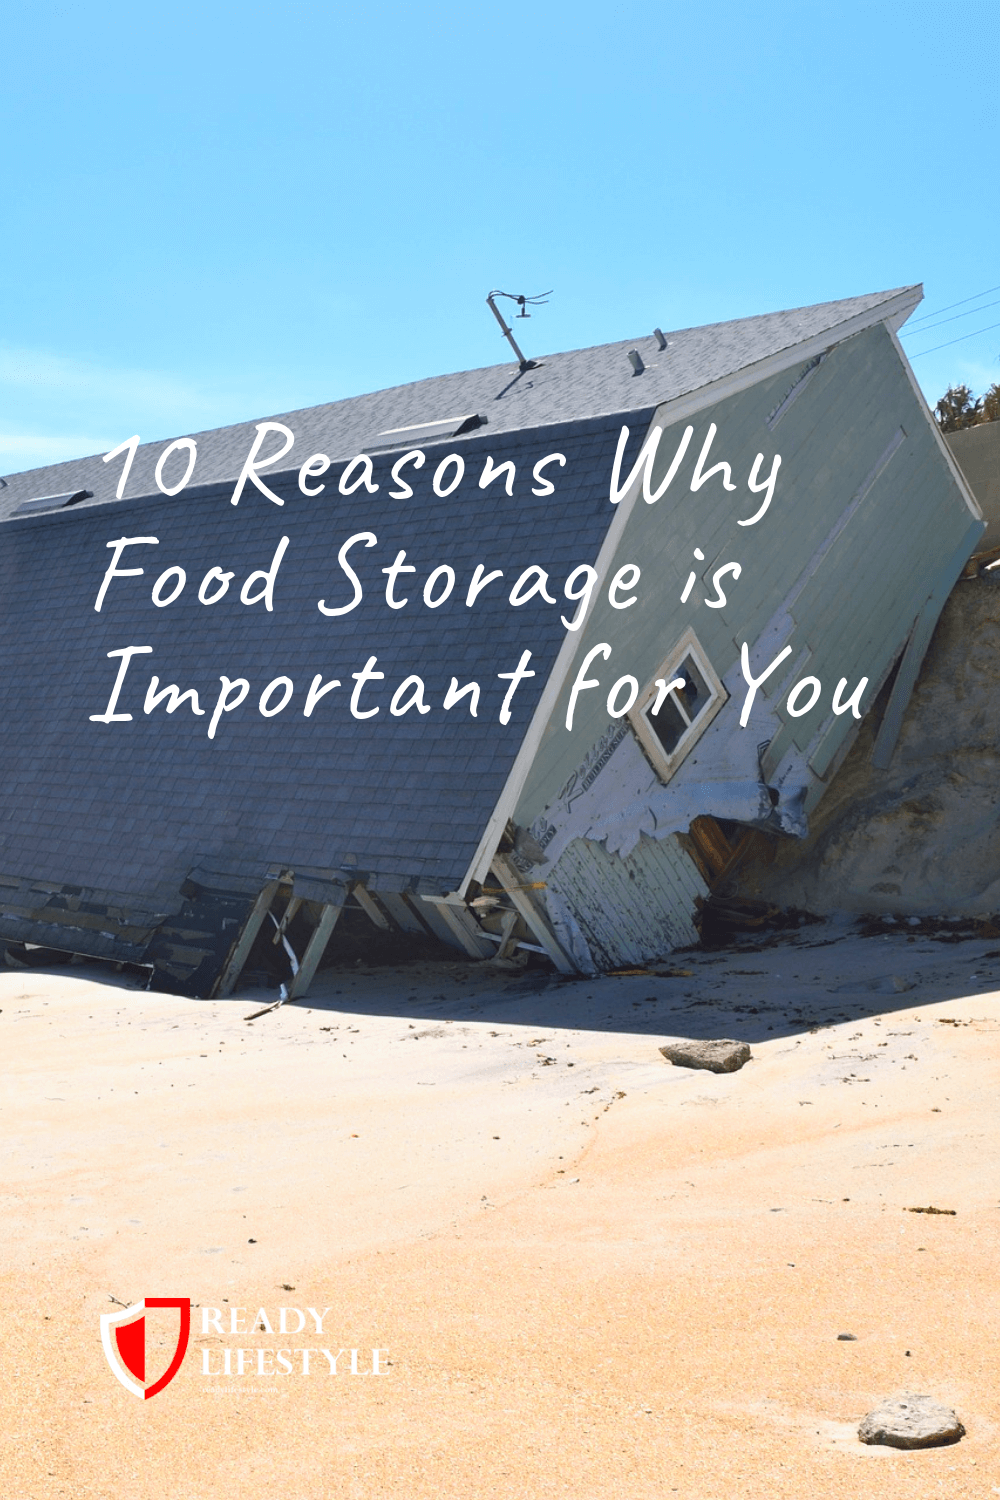 10 Reasons Why Food Storage is Important for You